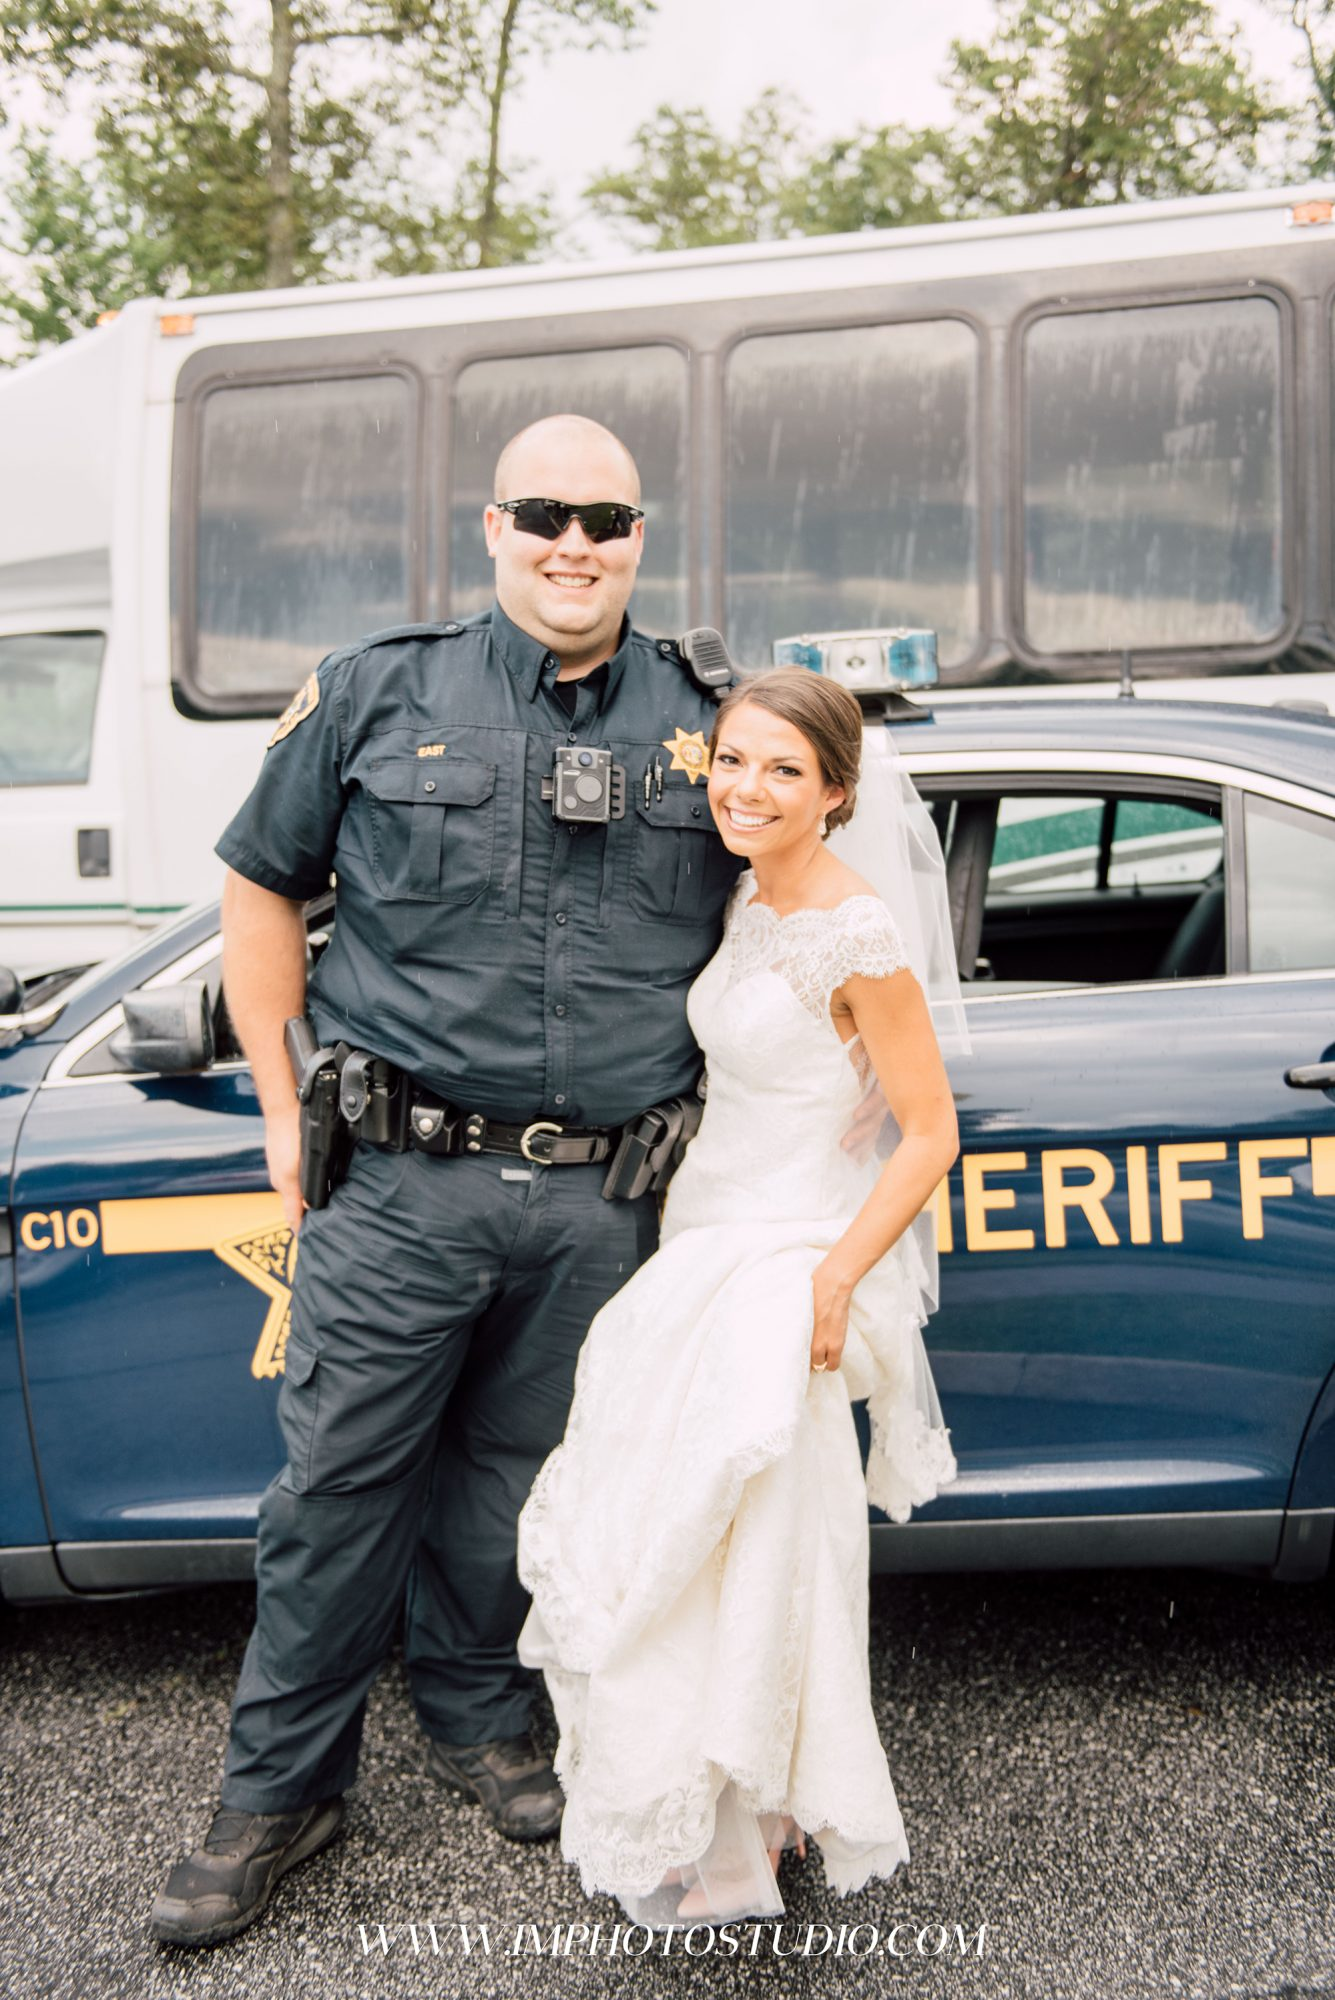 The Amazing Reason This Bride Ended up in the Back of a Police Car on Her Wedding Day